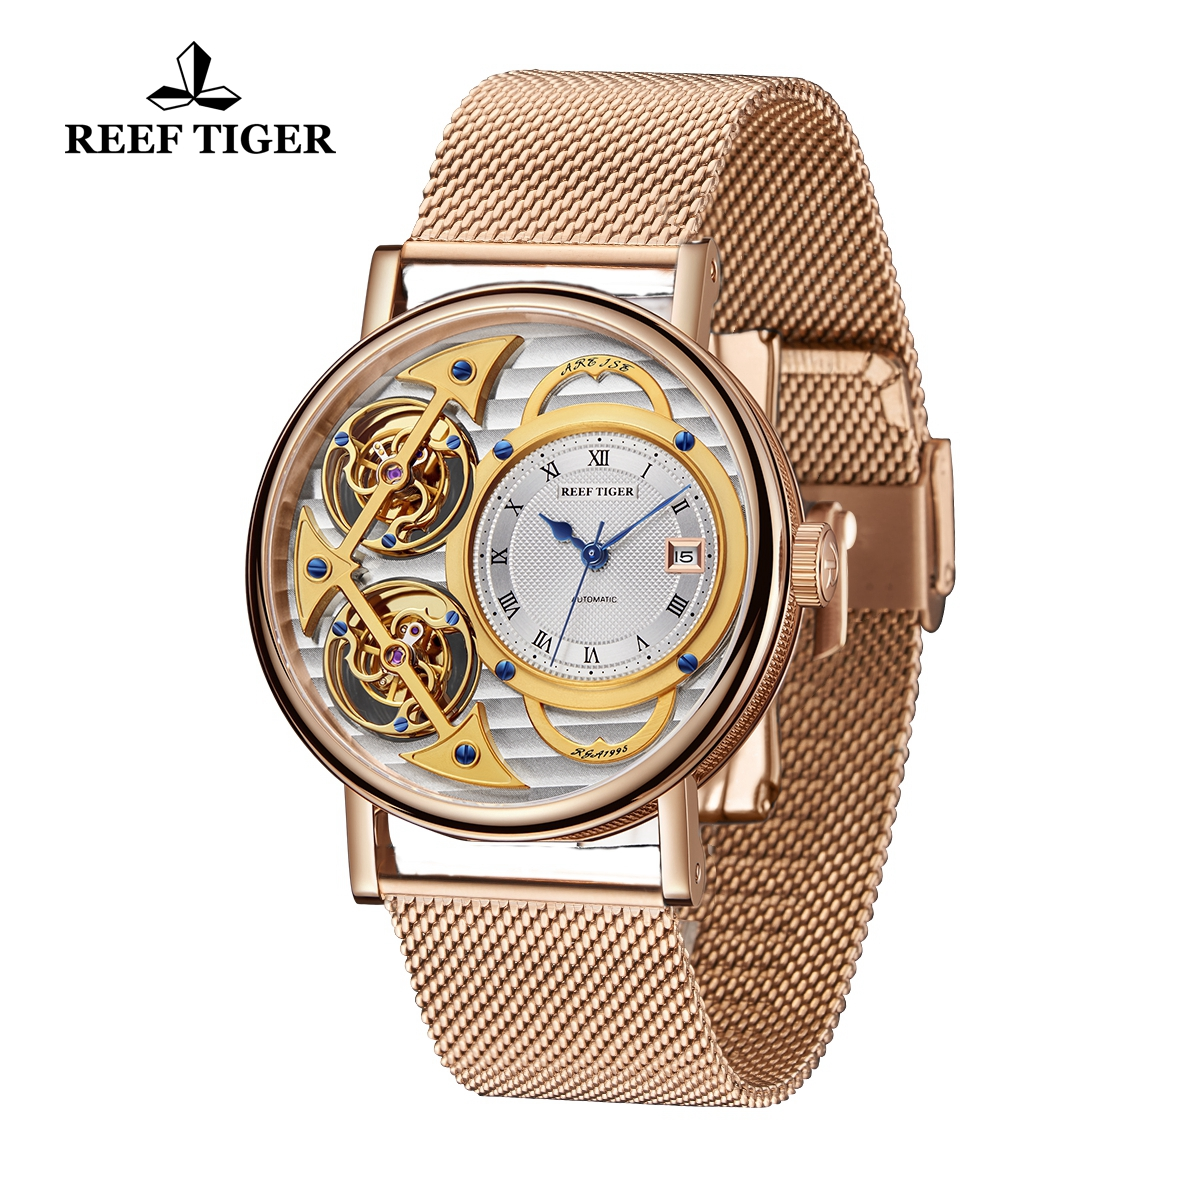 Reef Tiger Artist Magician Luxury Men\'s Rose Gold Watches Skeleton Dial Automatic Watch With Date RGA1995-PSPS